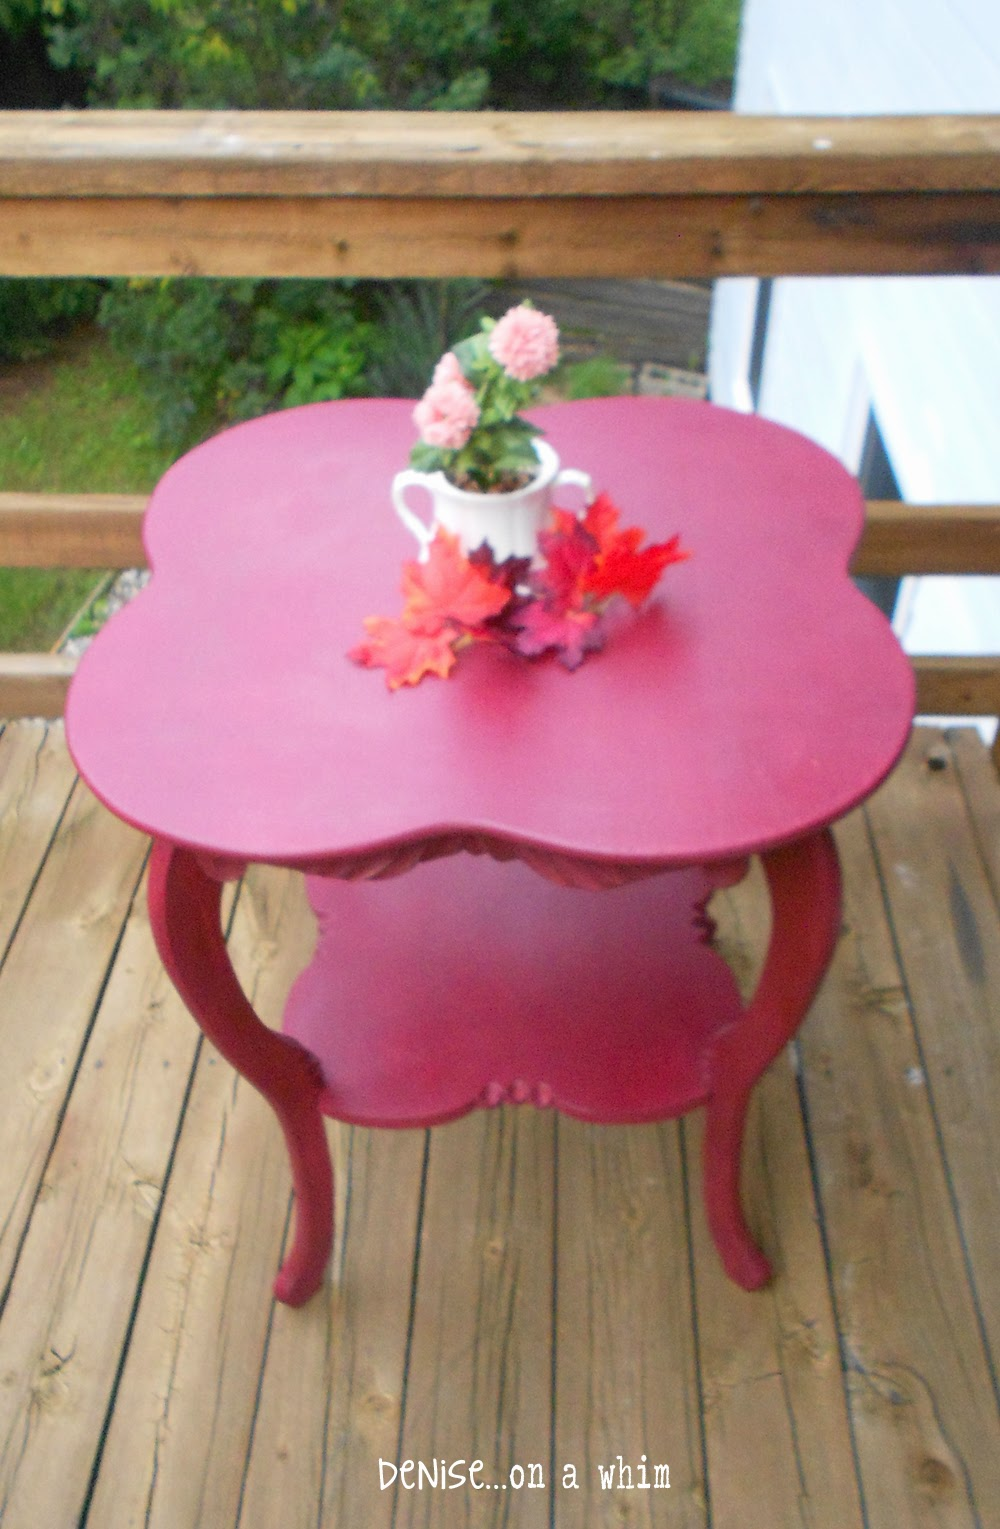 The unique Shape on an Antique Table Makeover from Denise on a Whim